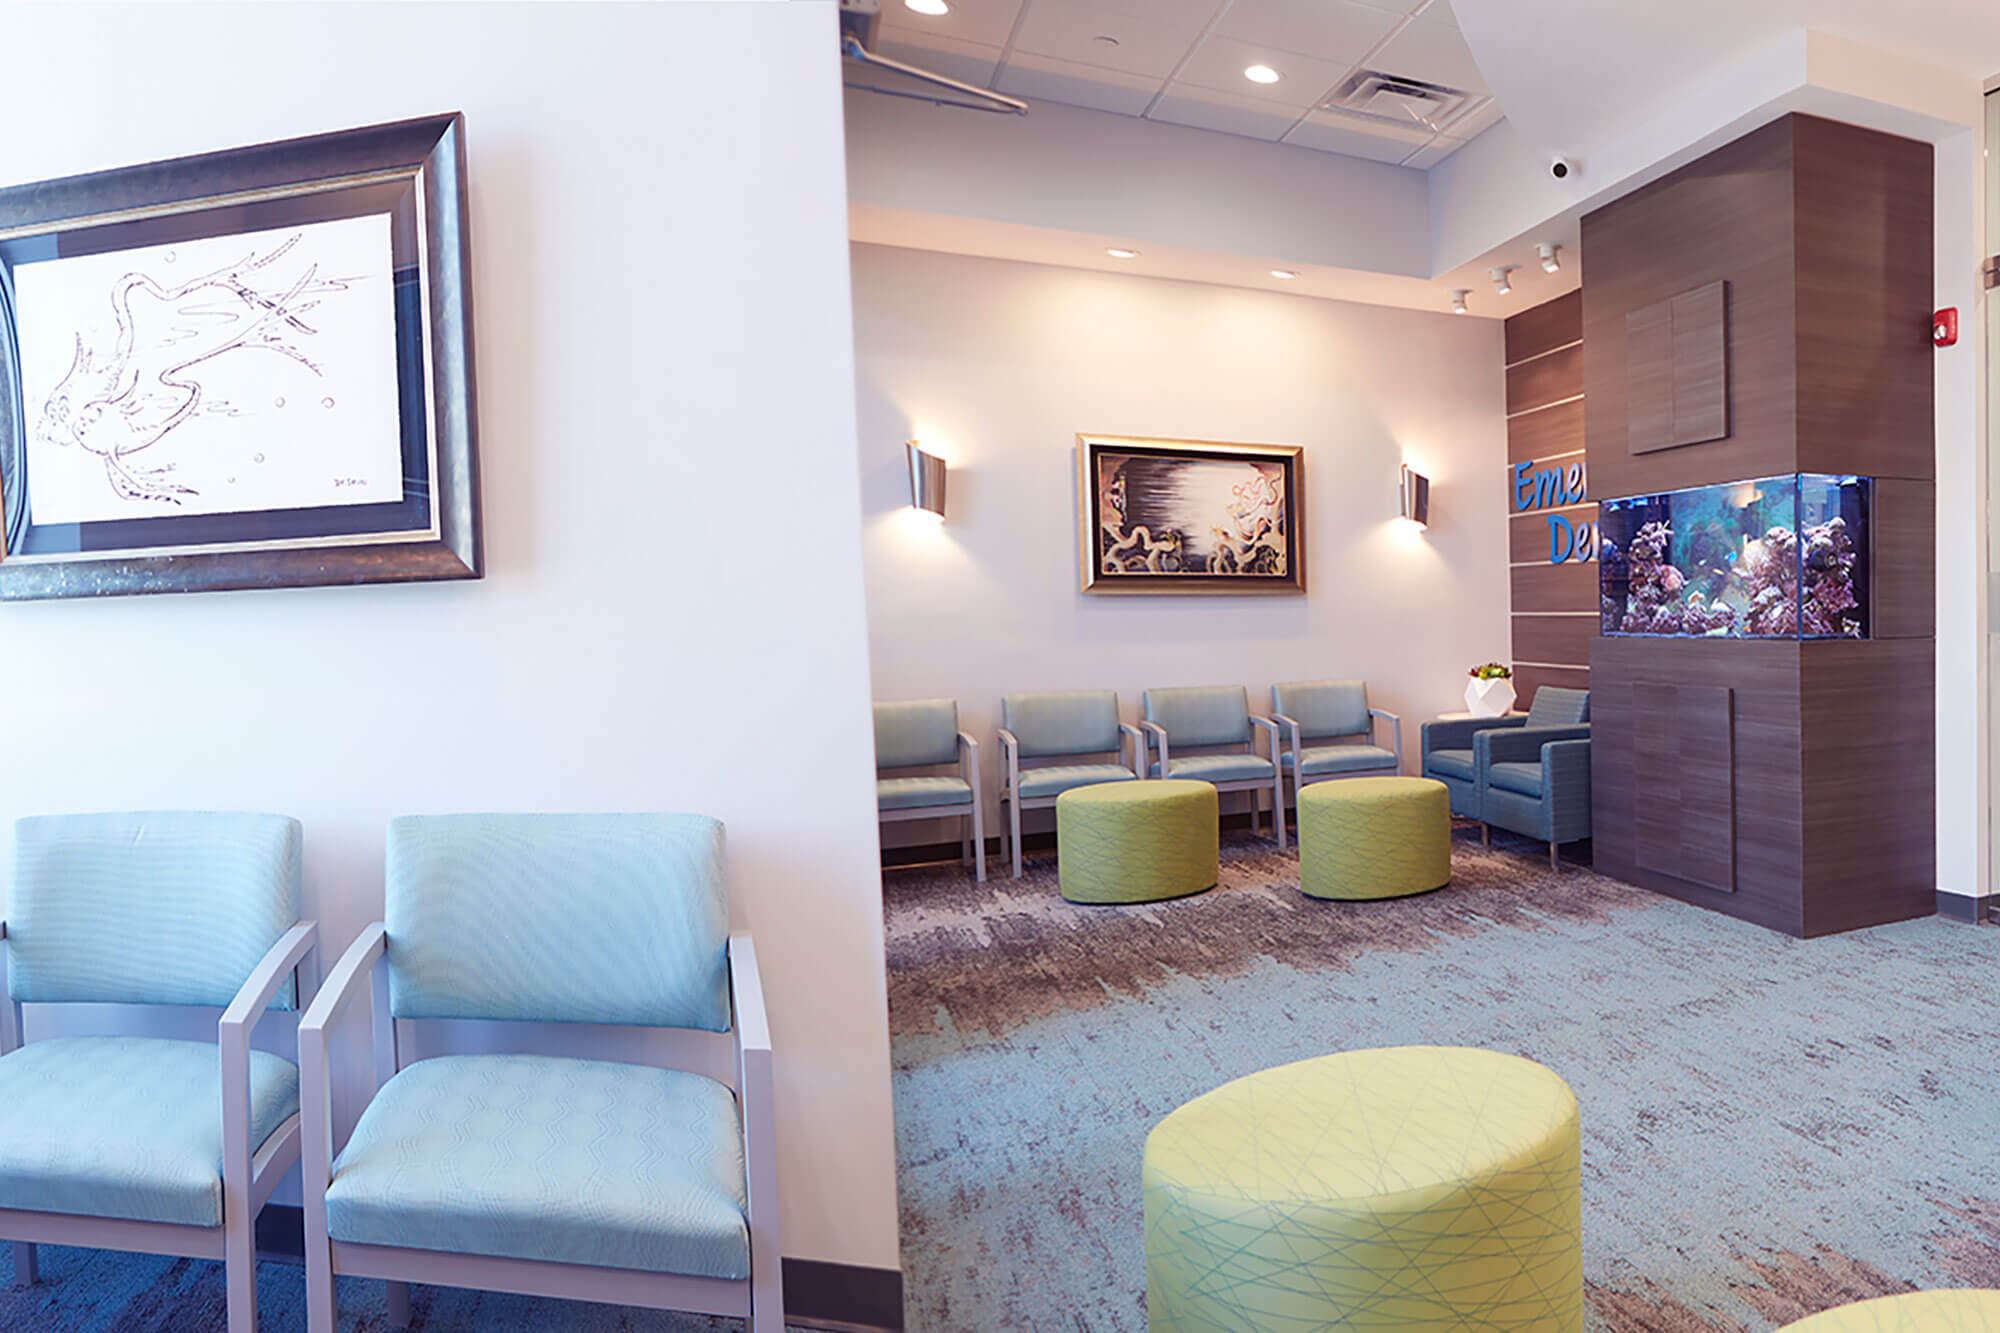 lobby of dental office with fish tank, grey seats and yellow ottomans